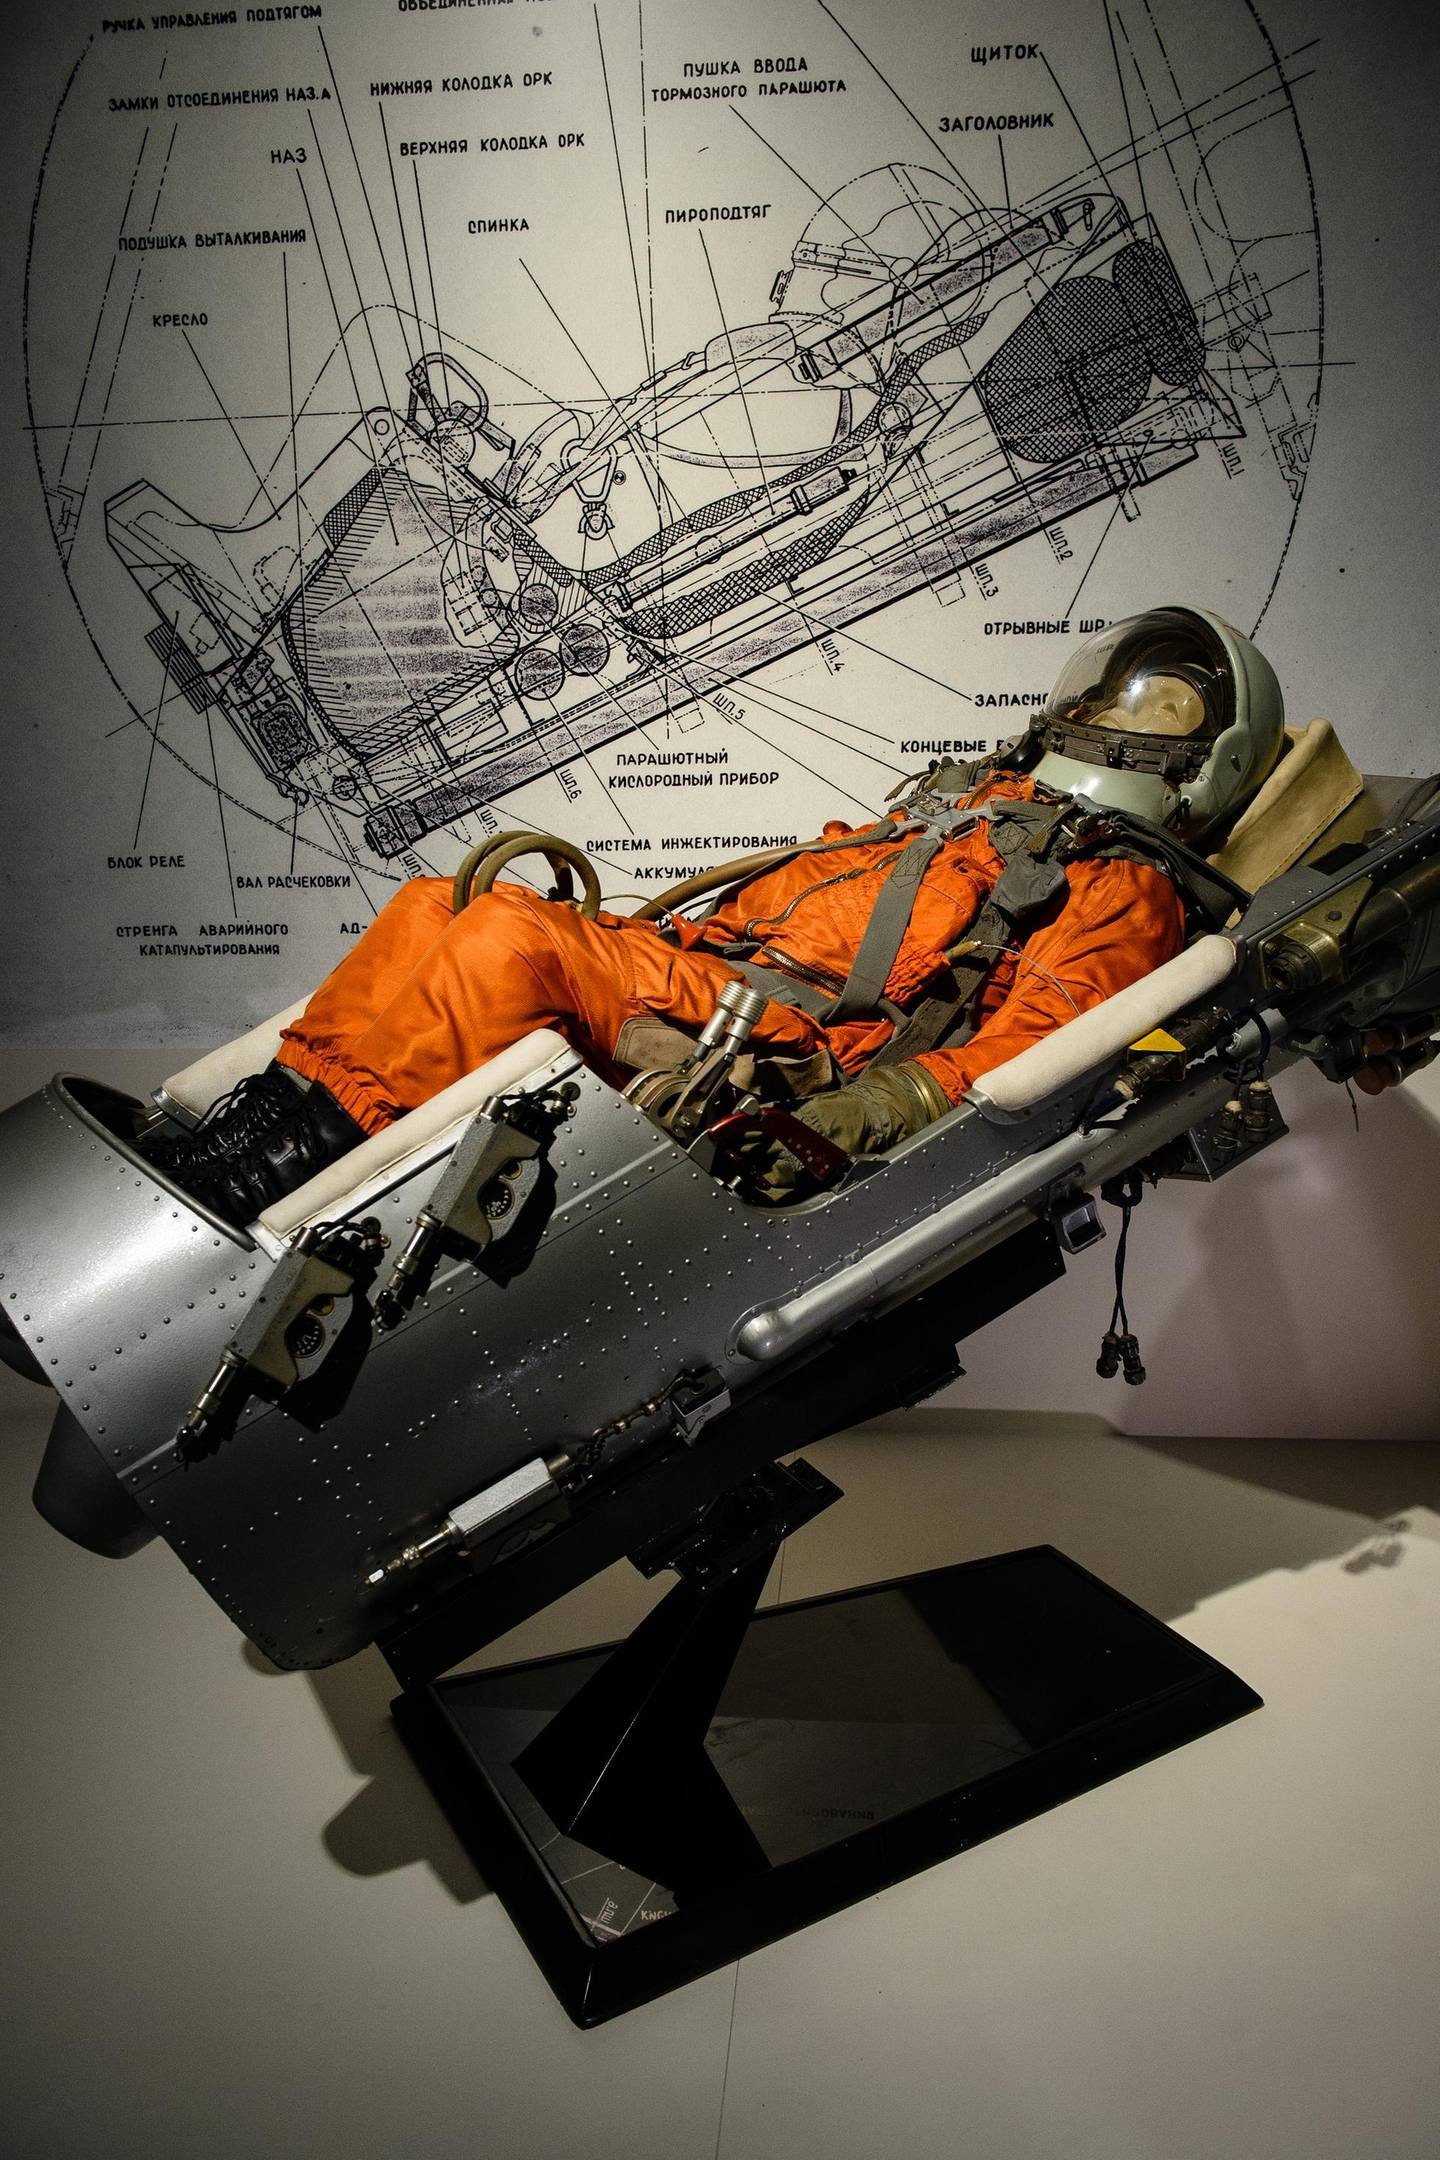 """Vostok SK-1 - The Vostok VZA ejection seat and SK-1 space suit, as used in Russian spacecraft Vostoks 1-5 in 1961, are displayed in London on September 17, 2015, during a press preview for the Science Museum's latest exhibition """"Cosmonaut"""". The exhibition charts Russia's space programme, from early theories and predictions by artists and scientists through to recent work on the International Space Station. The exhibition is due to run from September 18, 2015 to March 13, 2016.    AFP PHOTO / LEON NEAL (Photo by LEON NEAL / AFP)"""